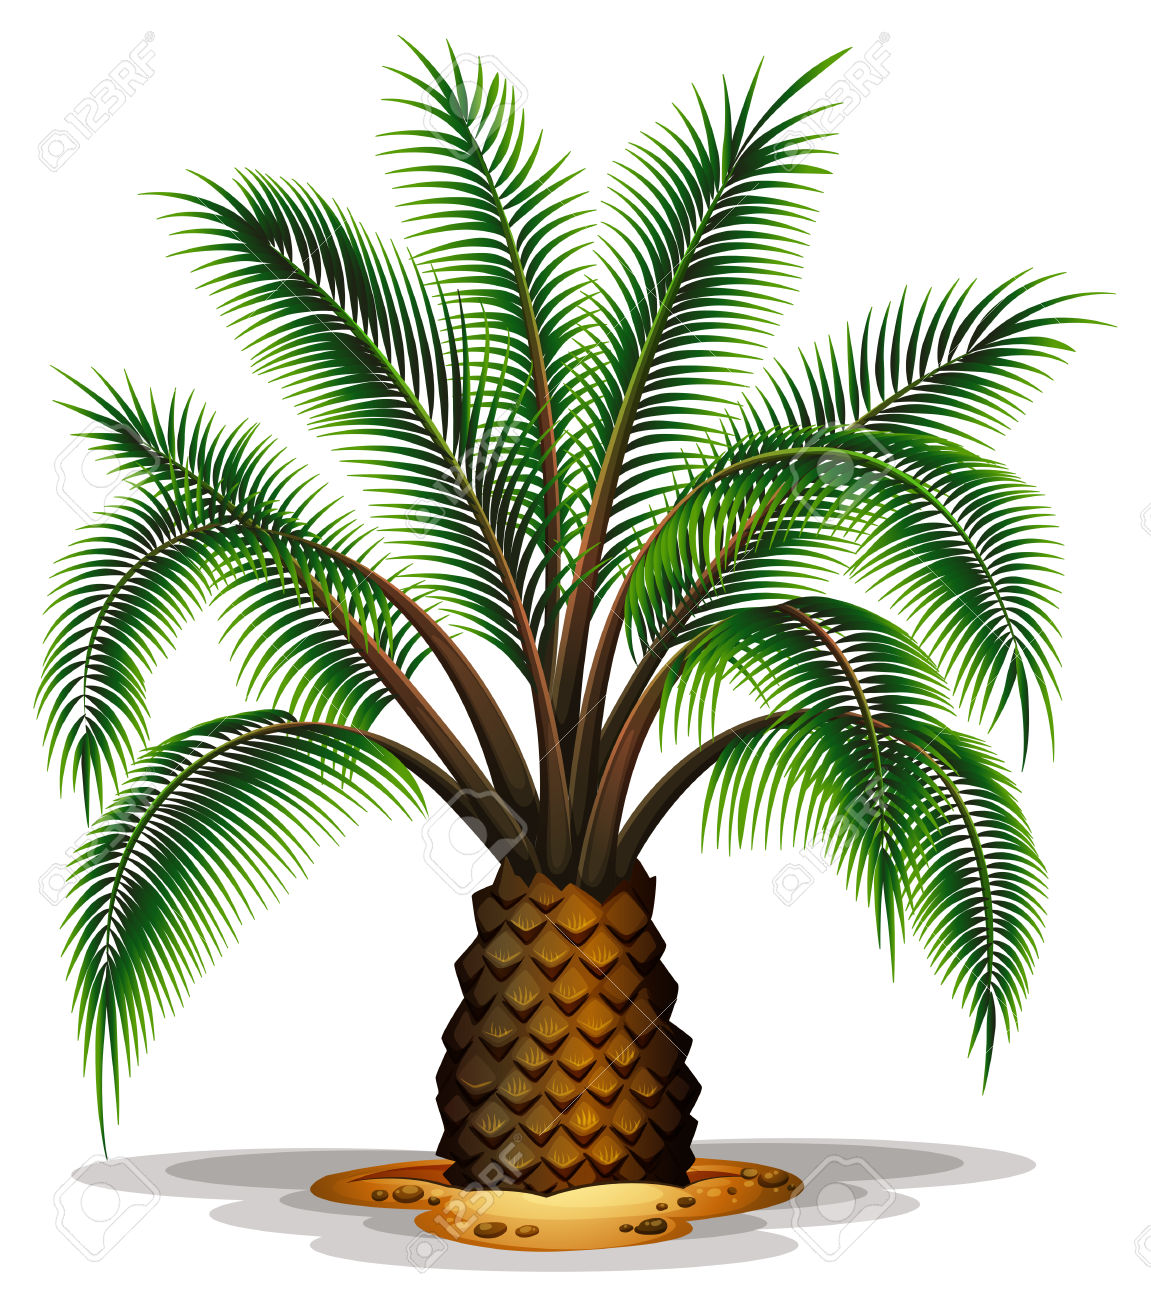 Illustration Of The Phoenix Canariensis On A White Background.